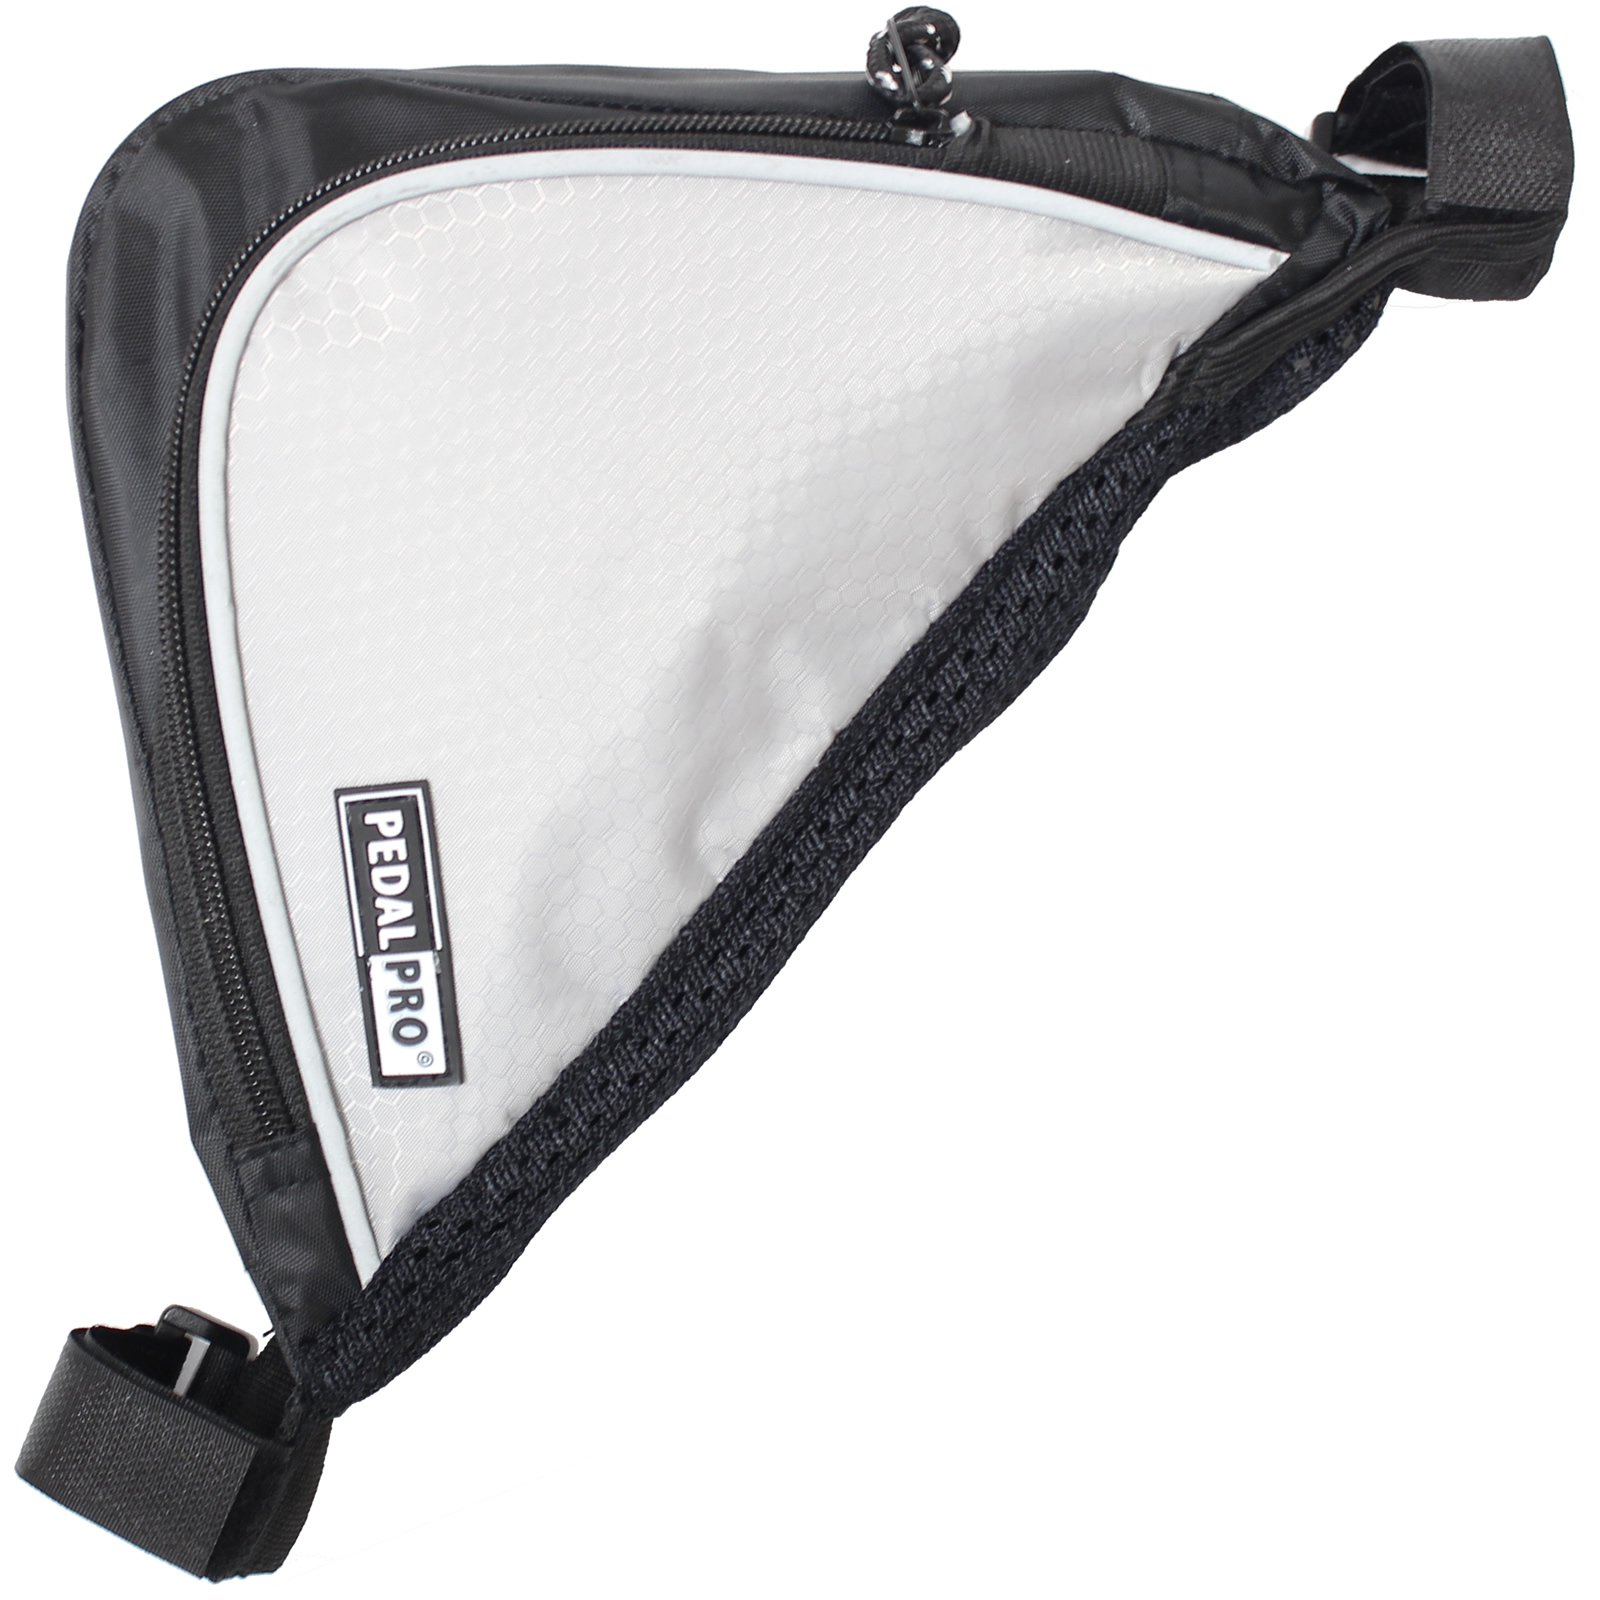 PEDALPRO BICYCLE/BIKE/CYCLE FRAME DOUBLE POCKET REFLECTIVE TRIANGLE CORNER BAG Enlarged Preview